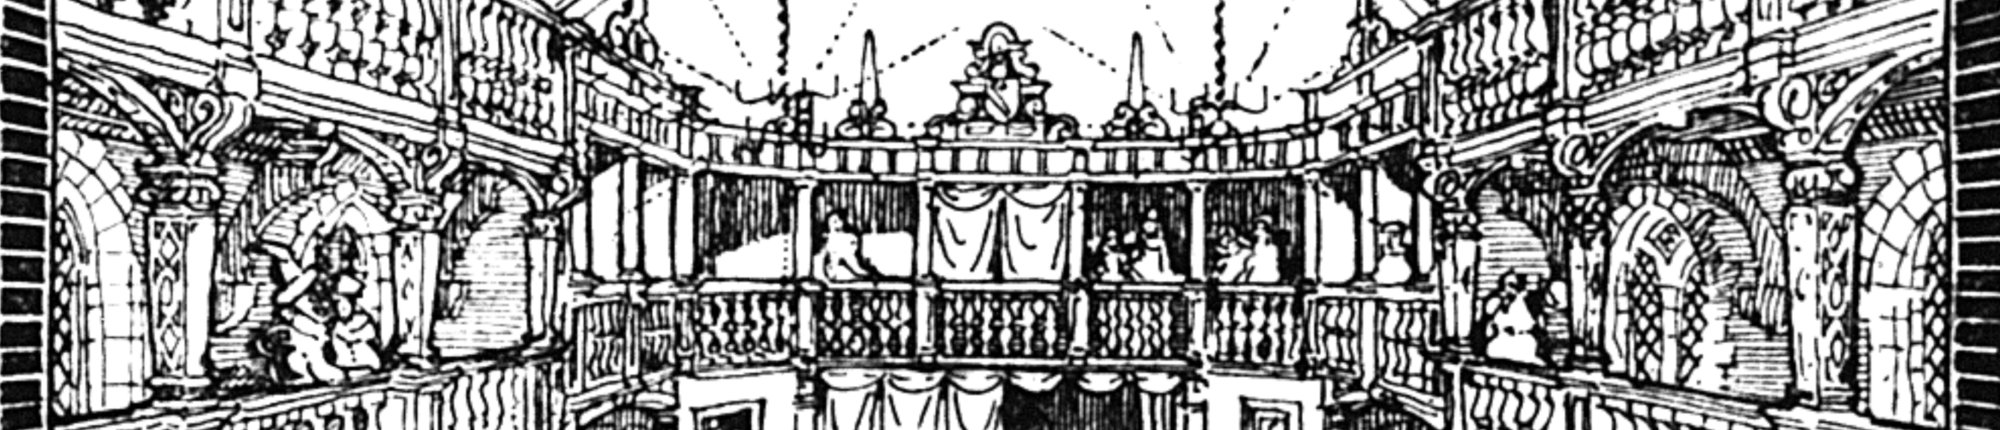 Practices of Collaboration in Early Modern Theatre